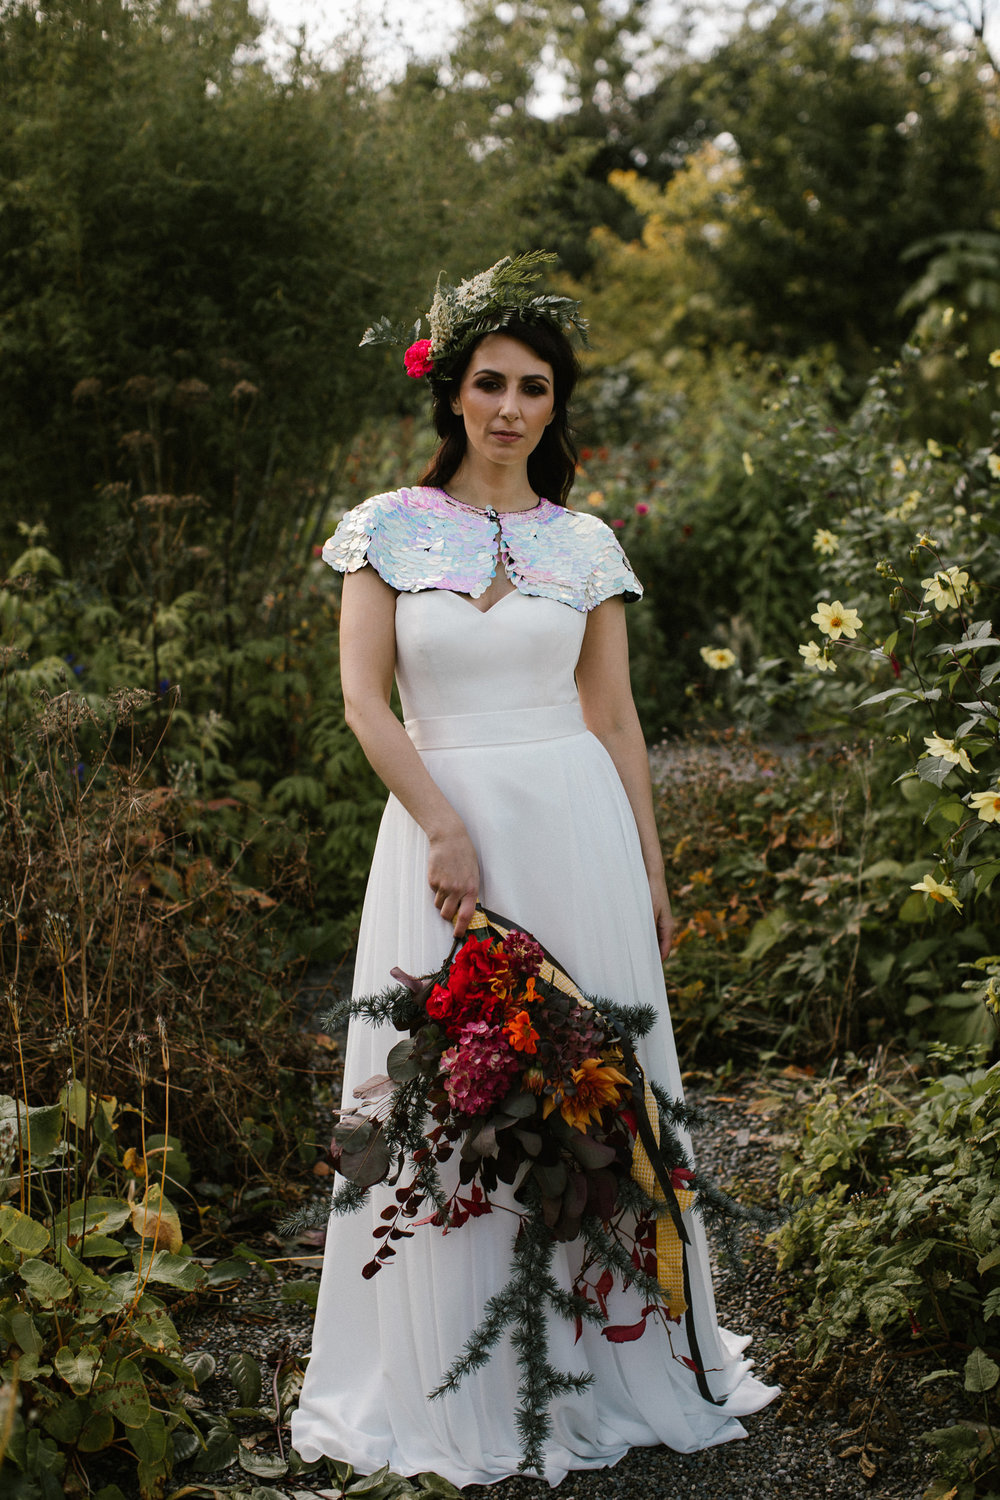 clairebyrnephotography-styled-shoot-huntingbrook-gardens-inspiration-weddings-woods-forest-90.jpg